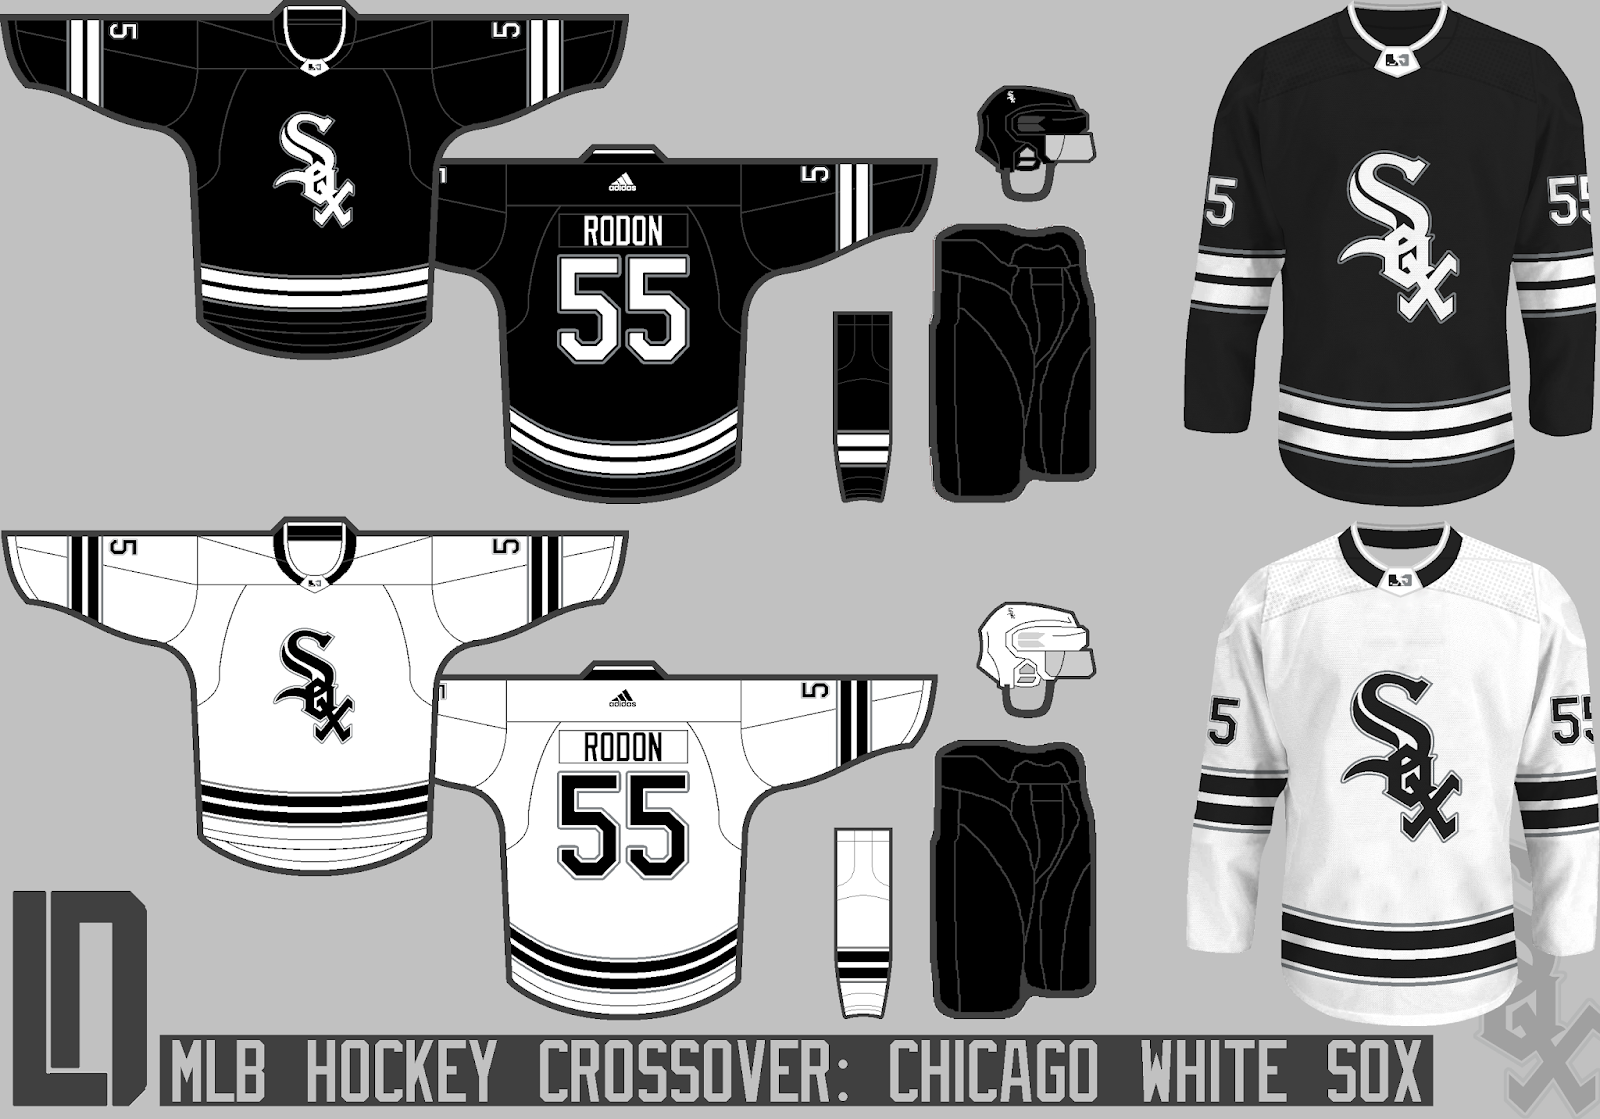 Chicago+White+Sox+Concept.png